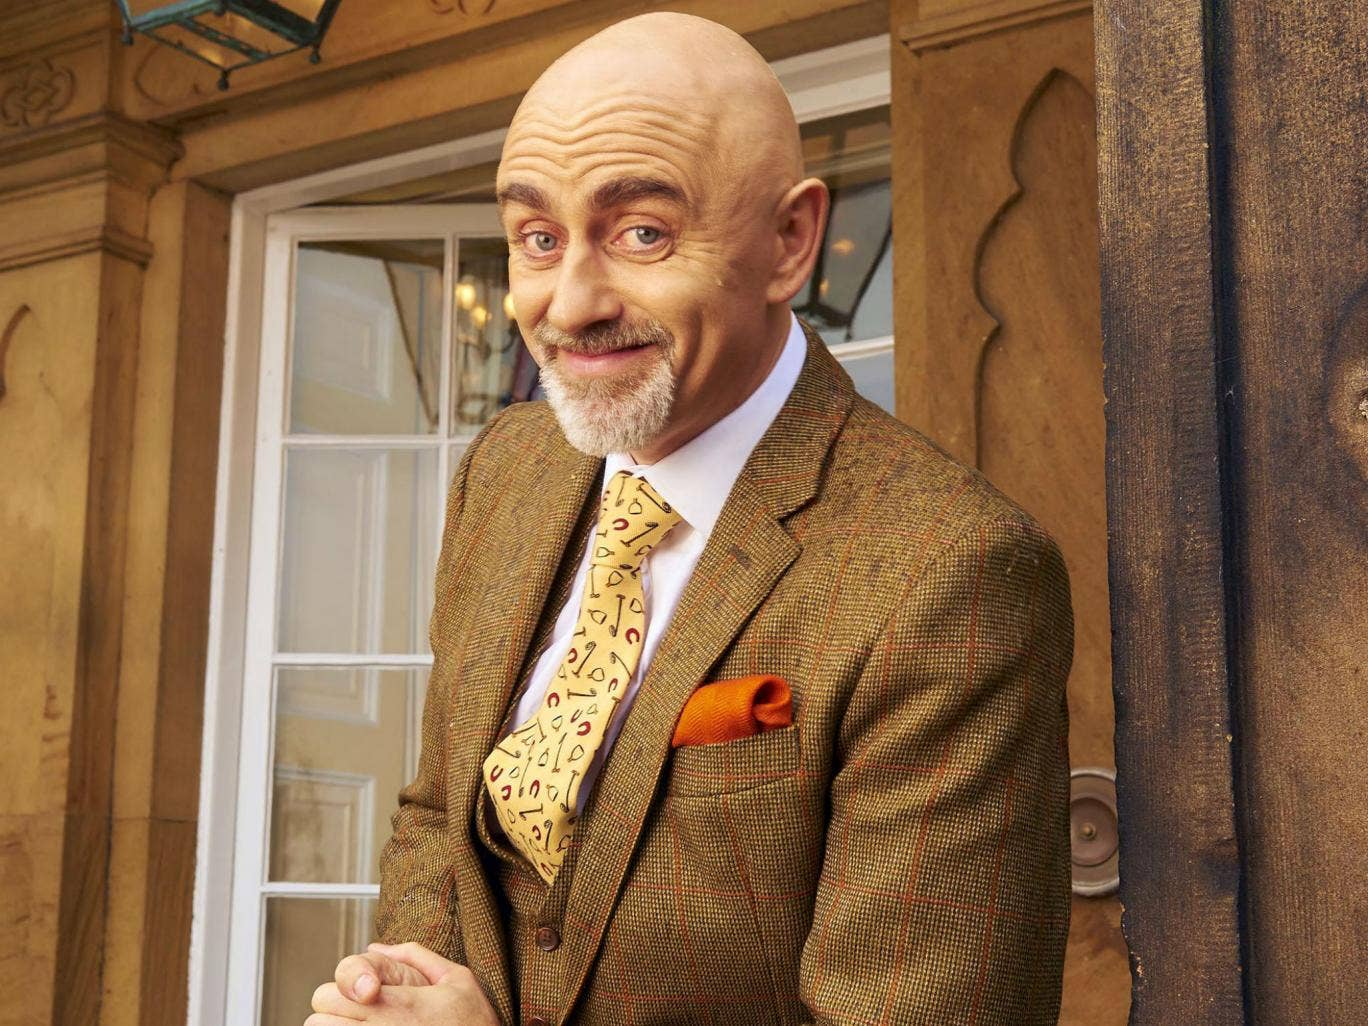 Come Dine With Me Narrator Surprises Viewers By Appearing